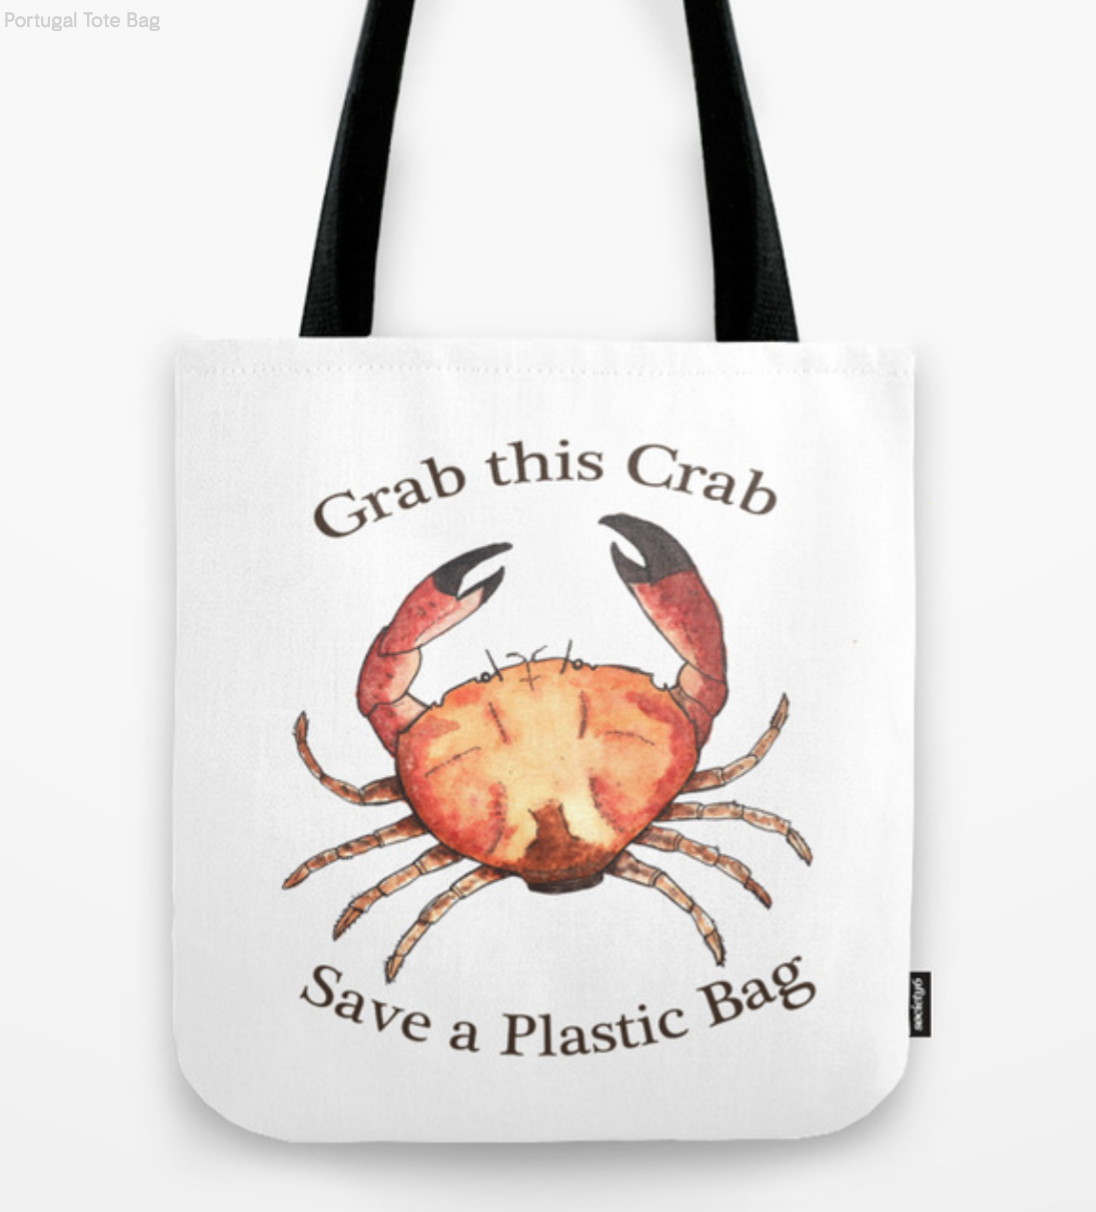 The CRAB BAG - Just launched!